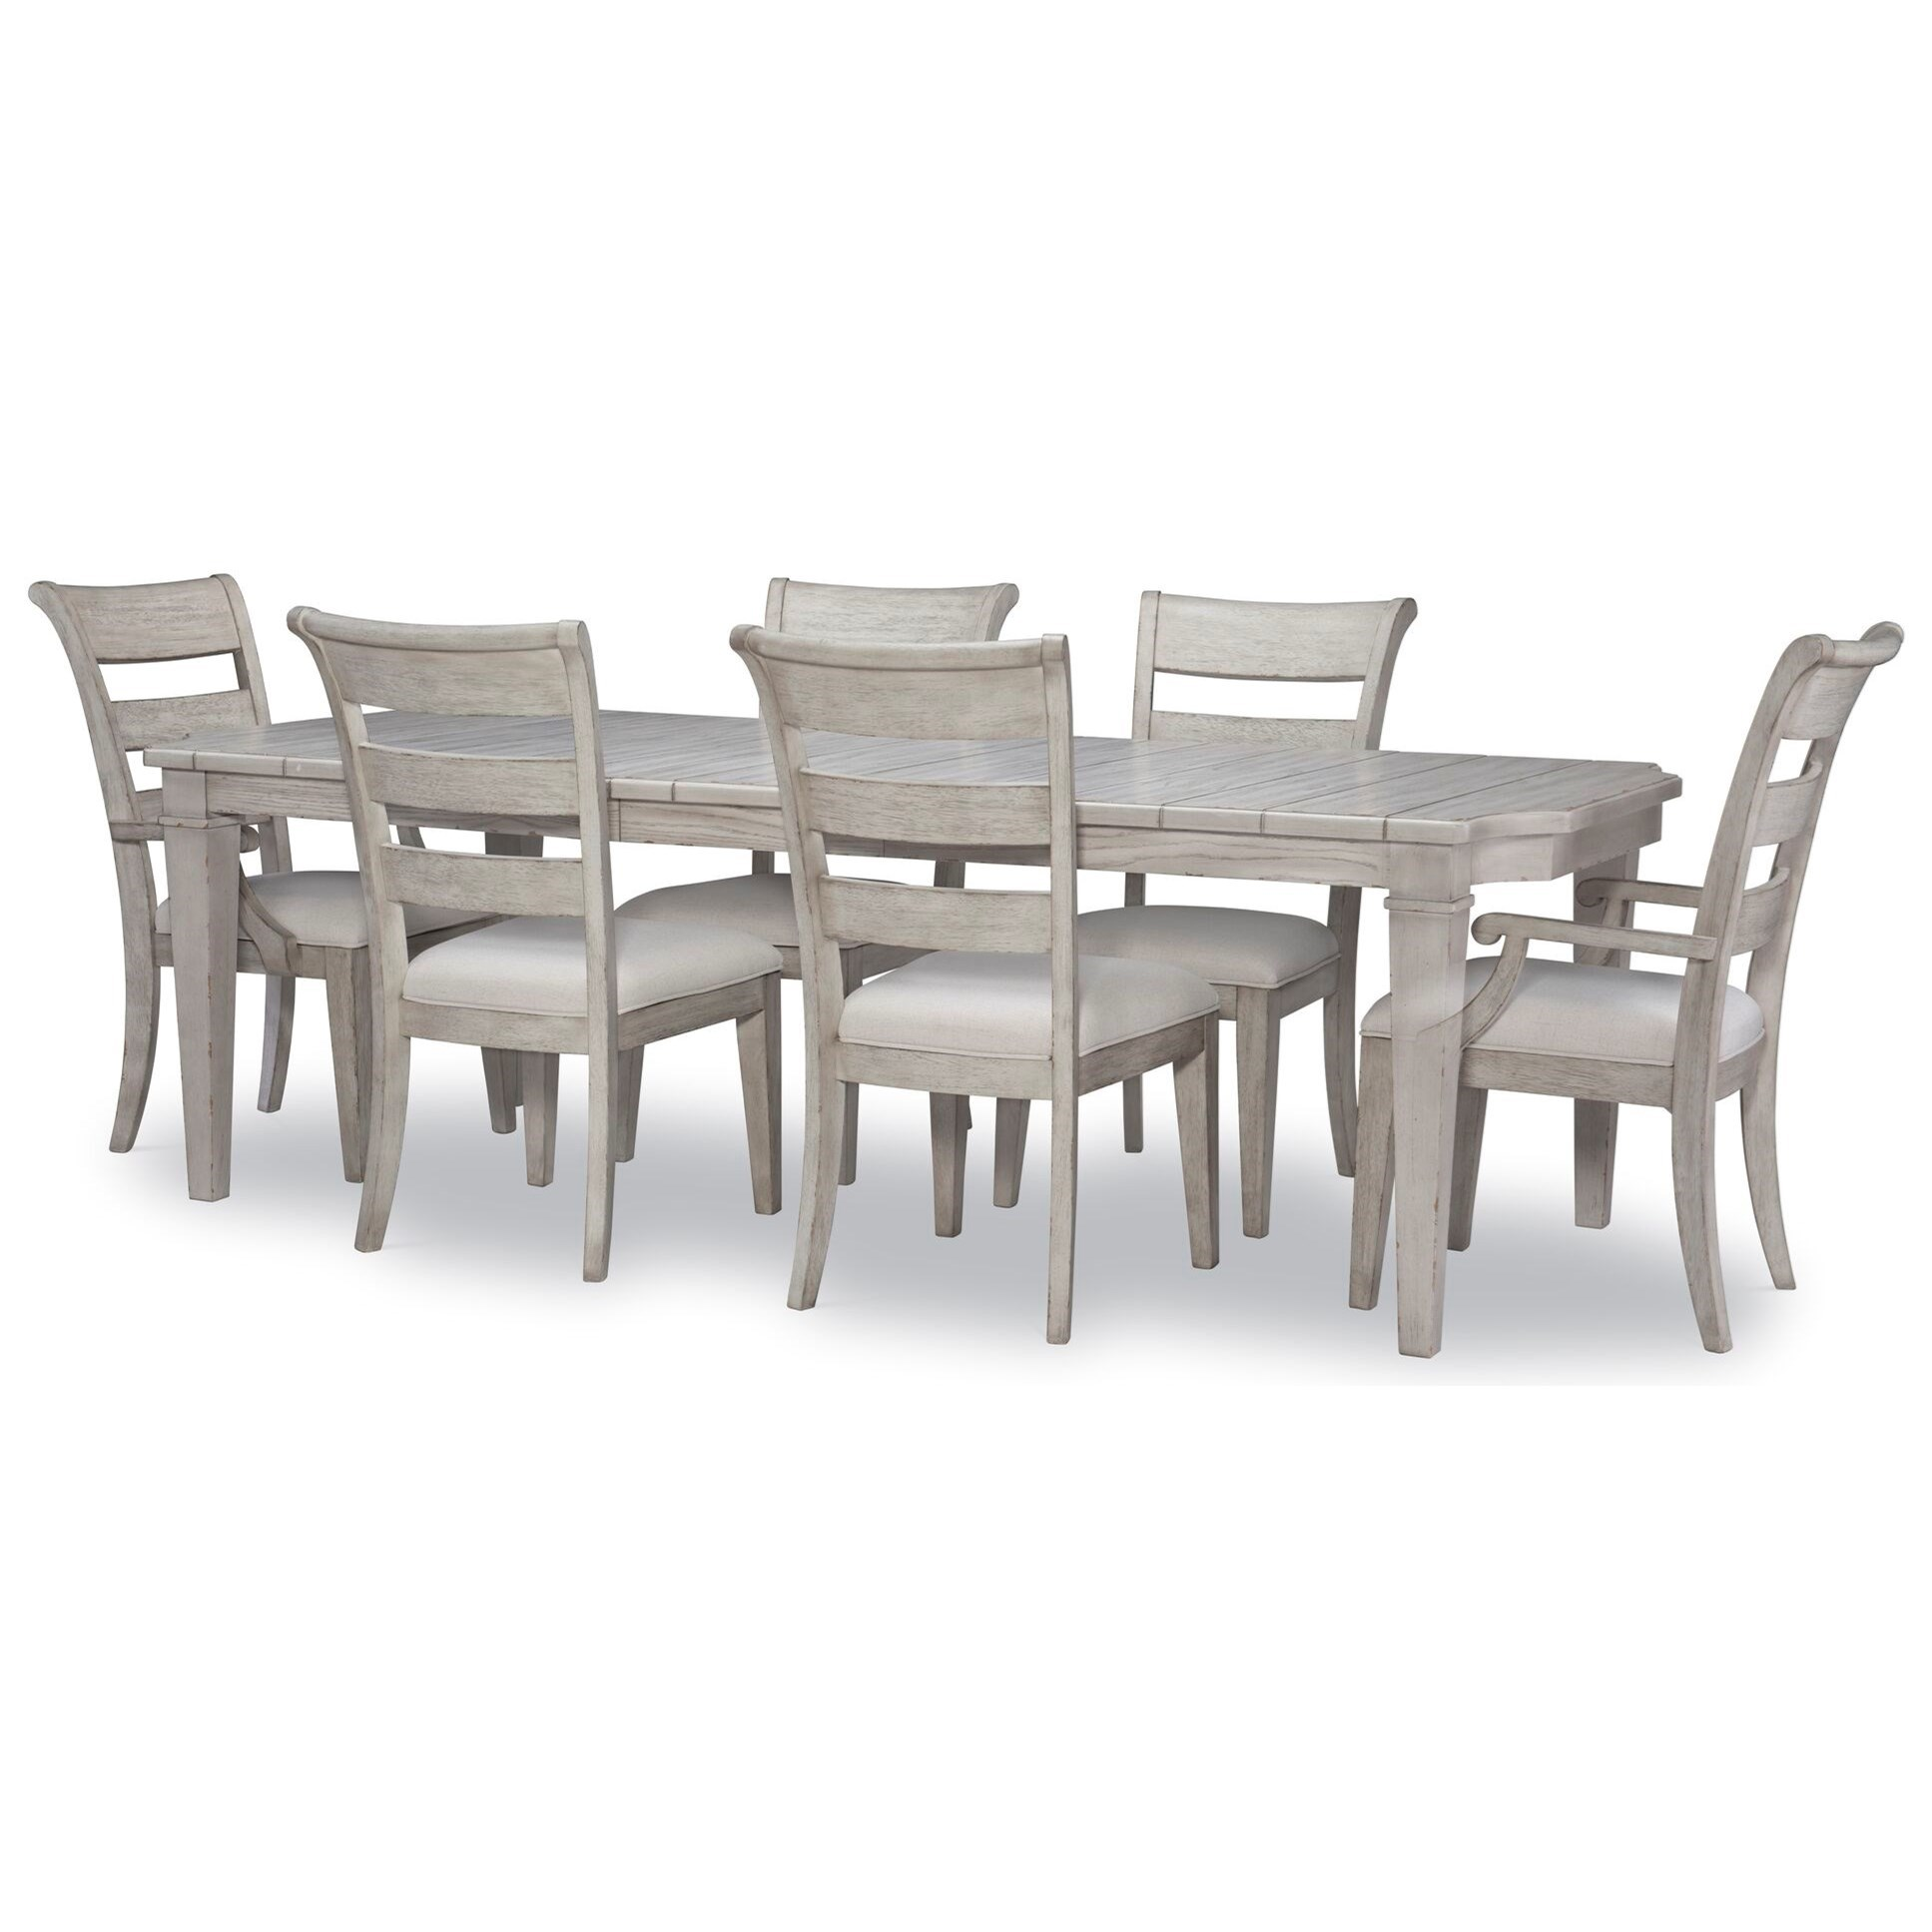 Belhaven 7-Piece Table and Chair Set by Legacy Classic at Darvin Furniture